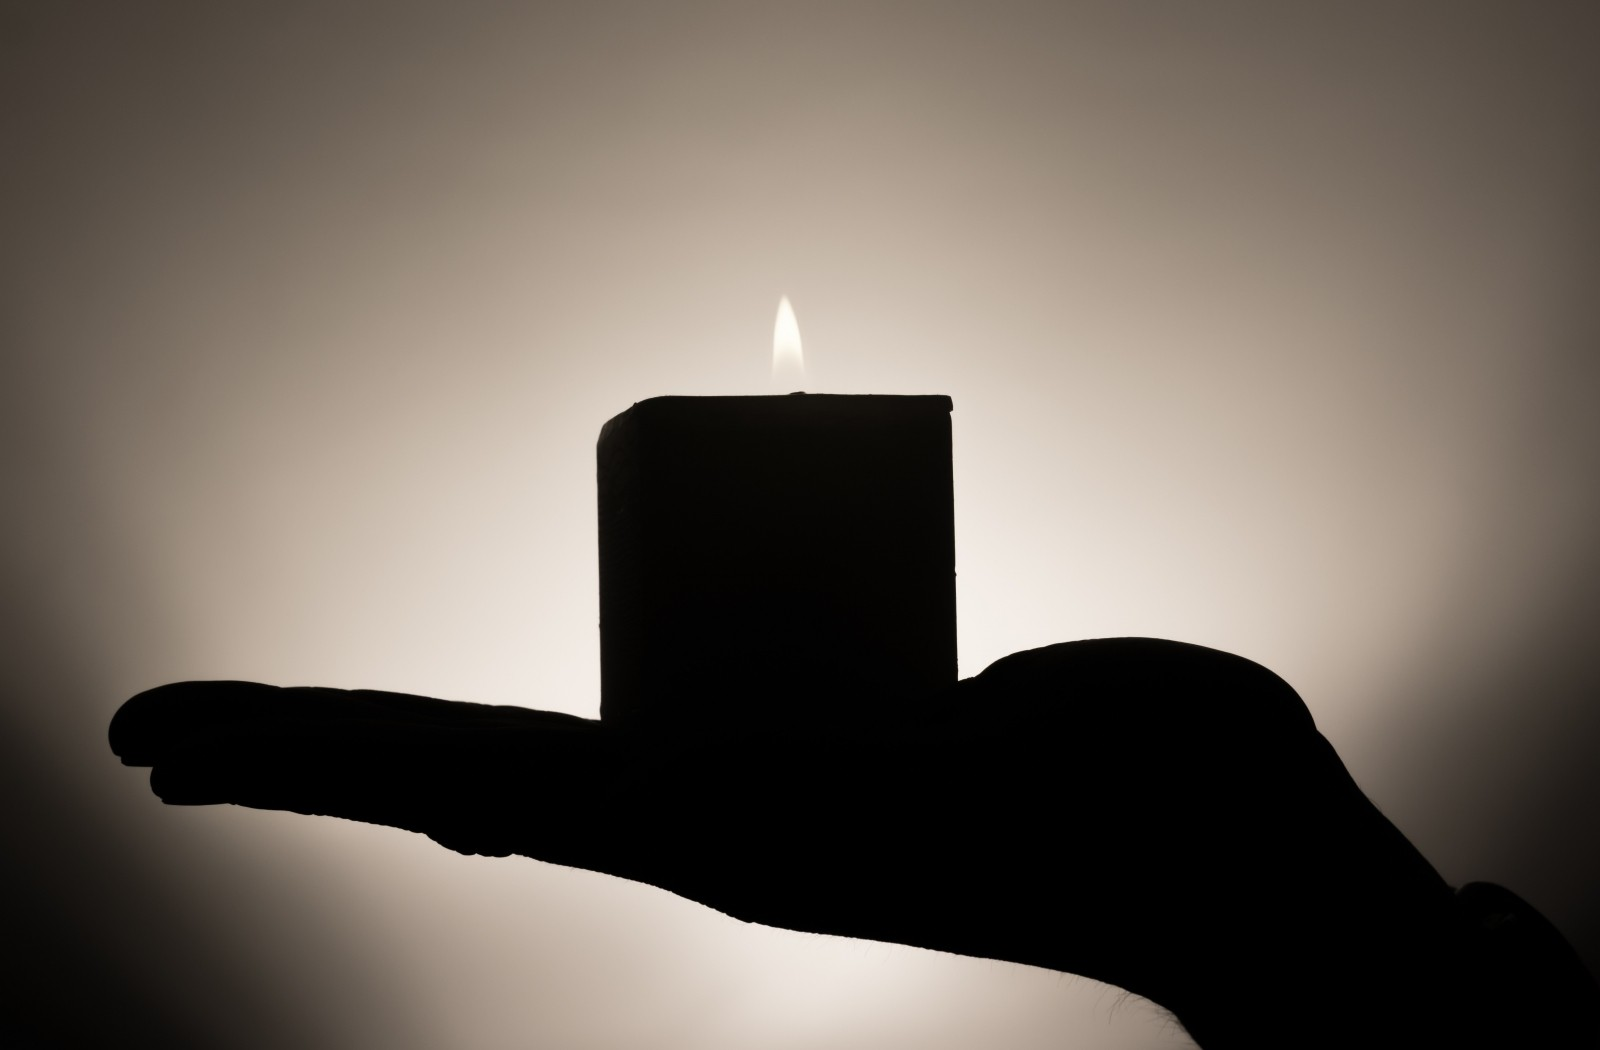 candle-meditation-hand-keep-heat-confidence-rest